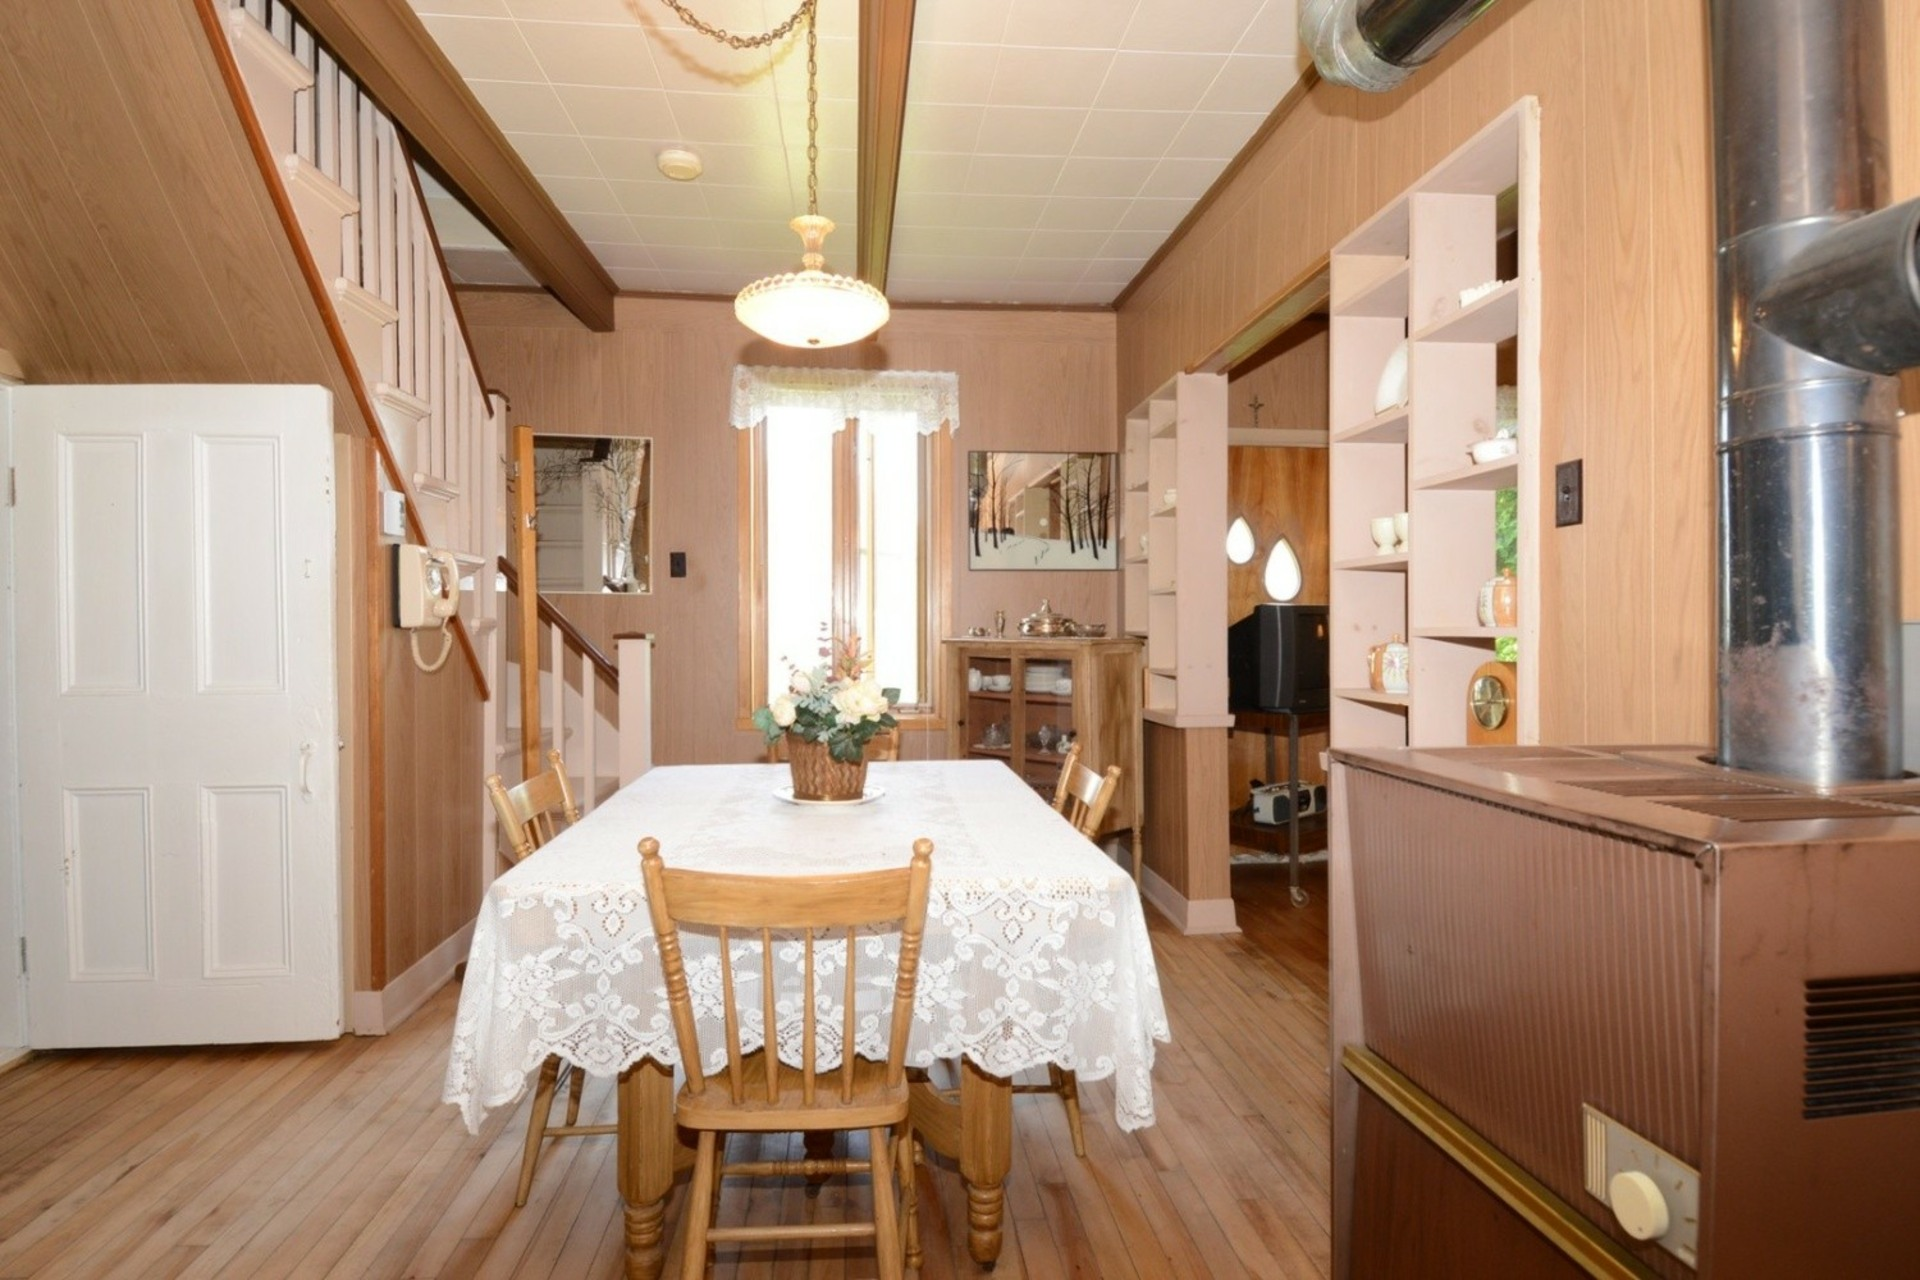 image 9 - Farmhouse For sale Rigaud - 8 rooms